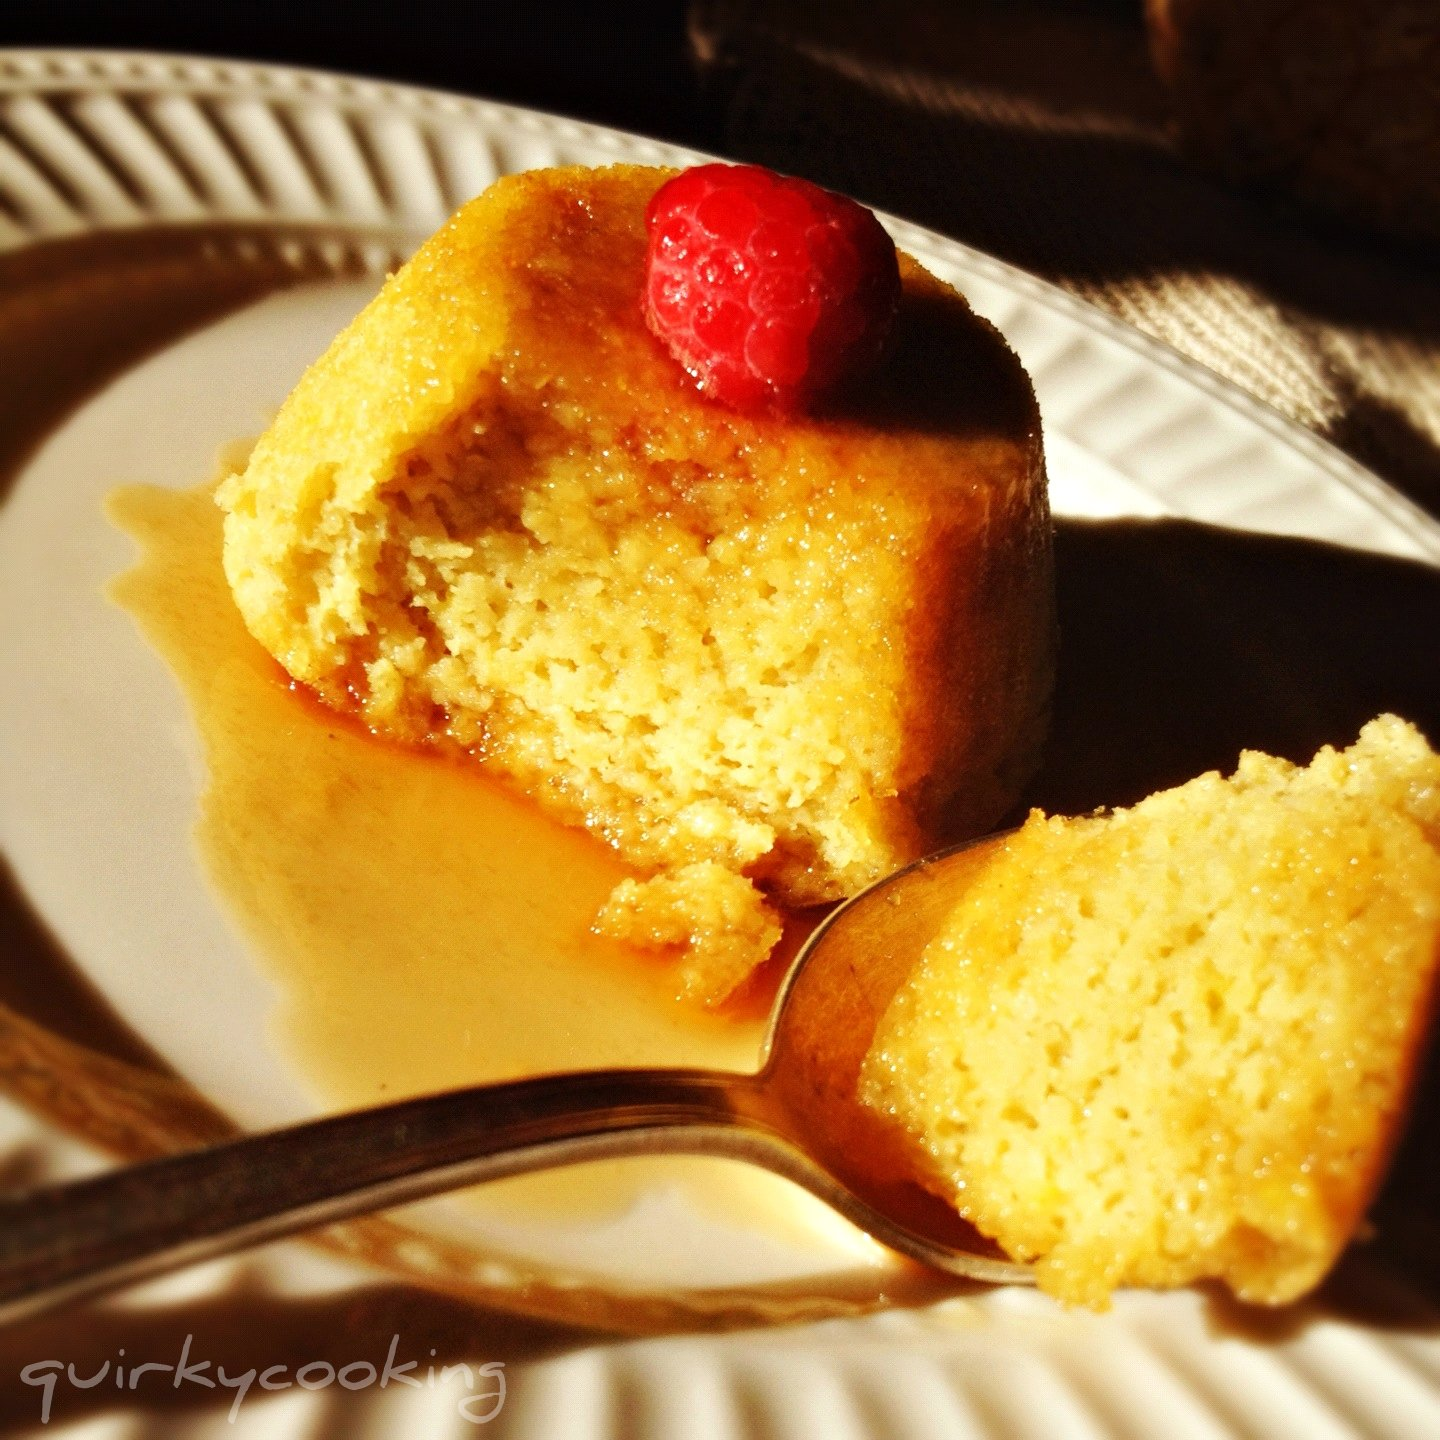 ... free recipe for the steamed lemon and coconut puddings we make at